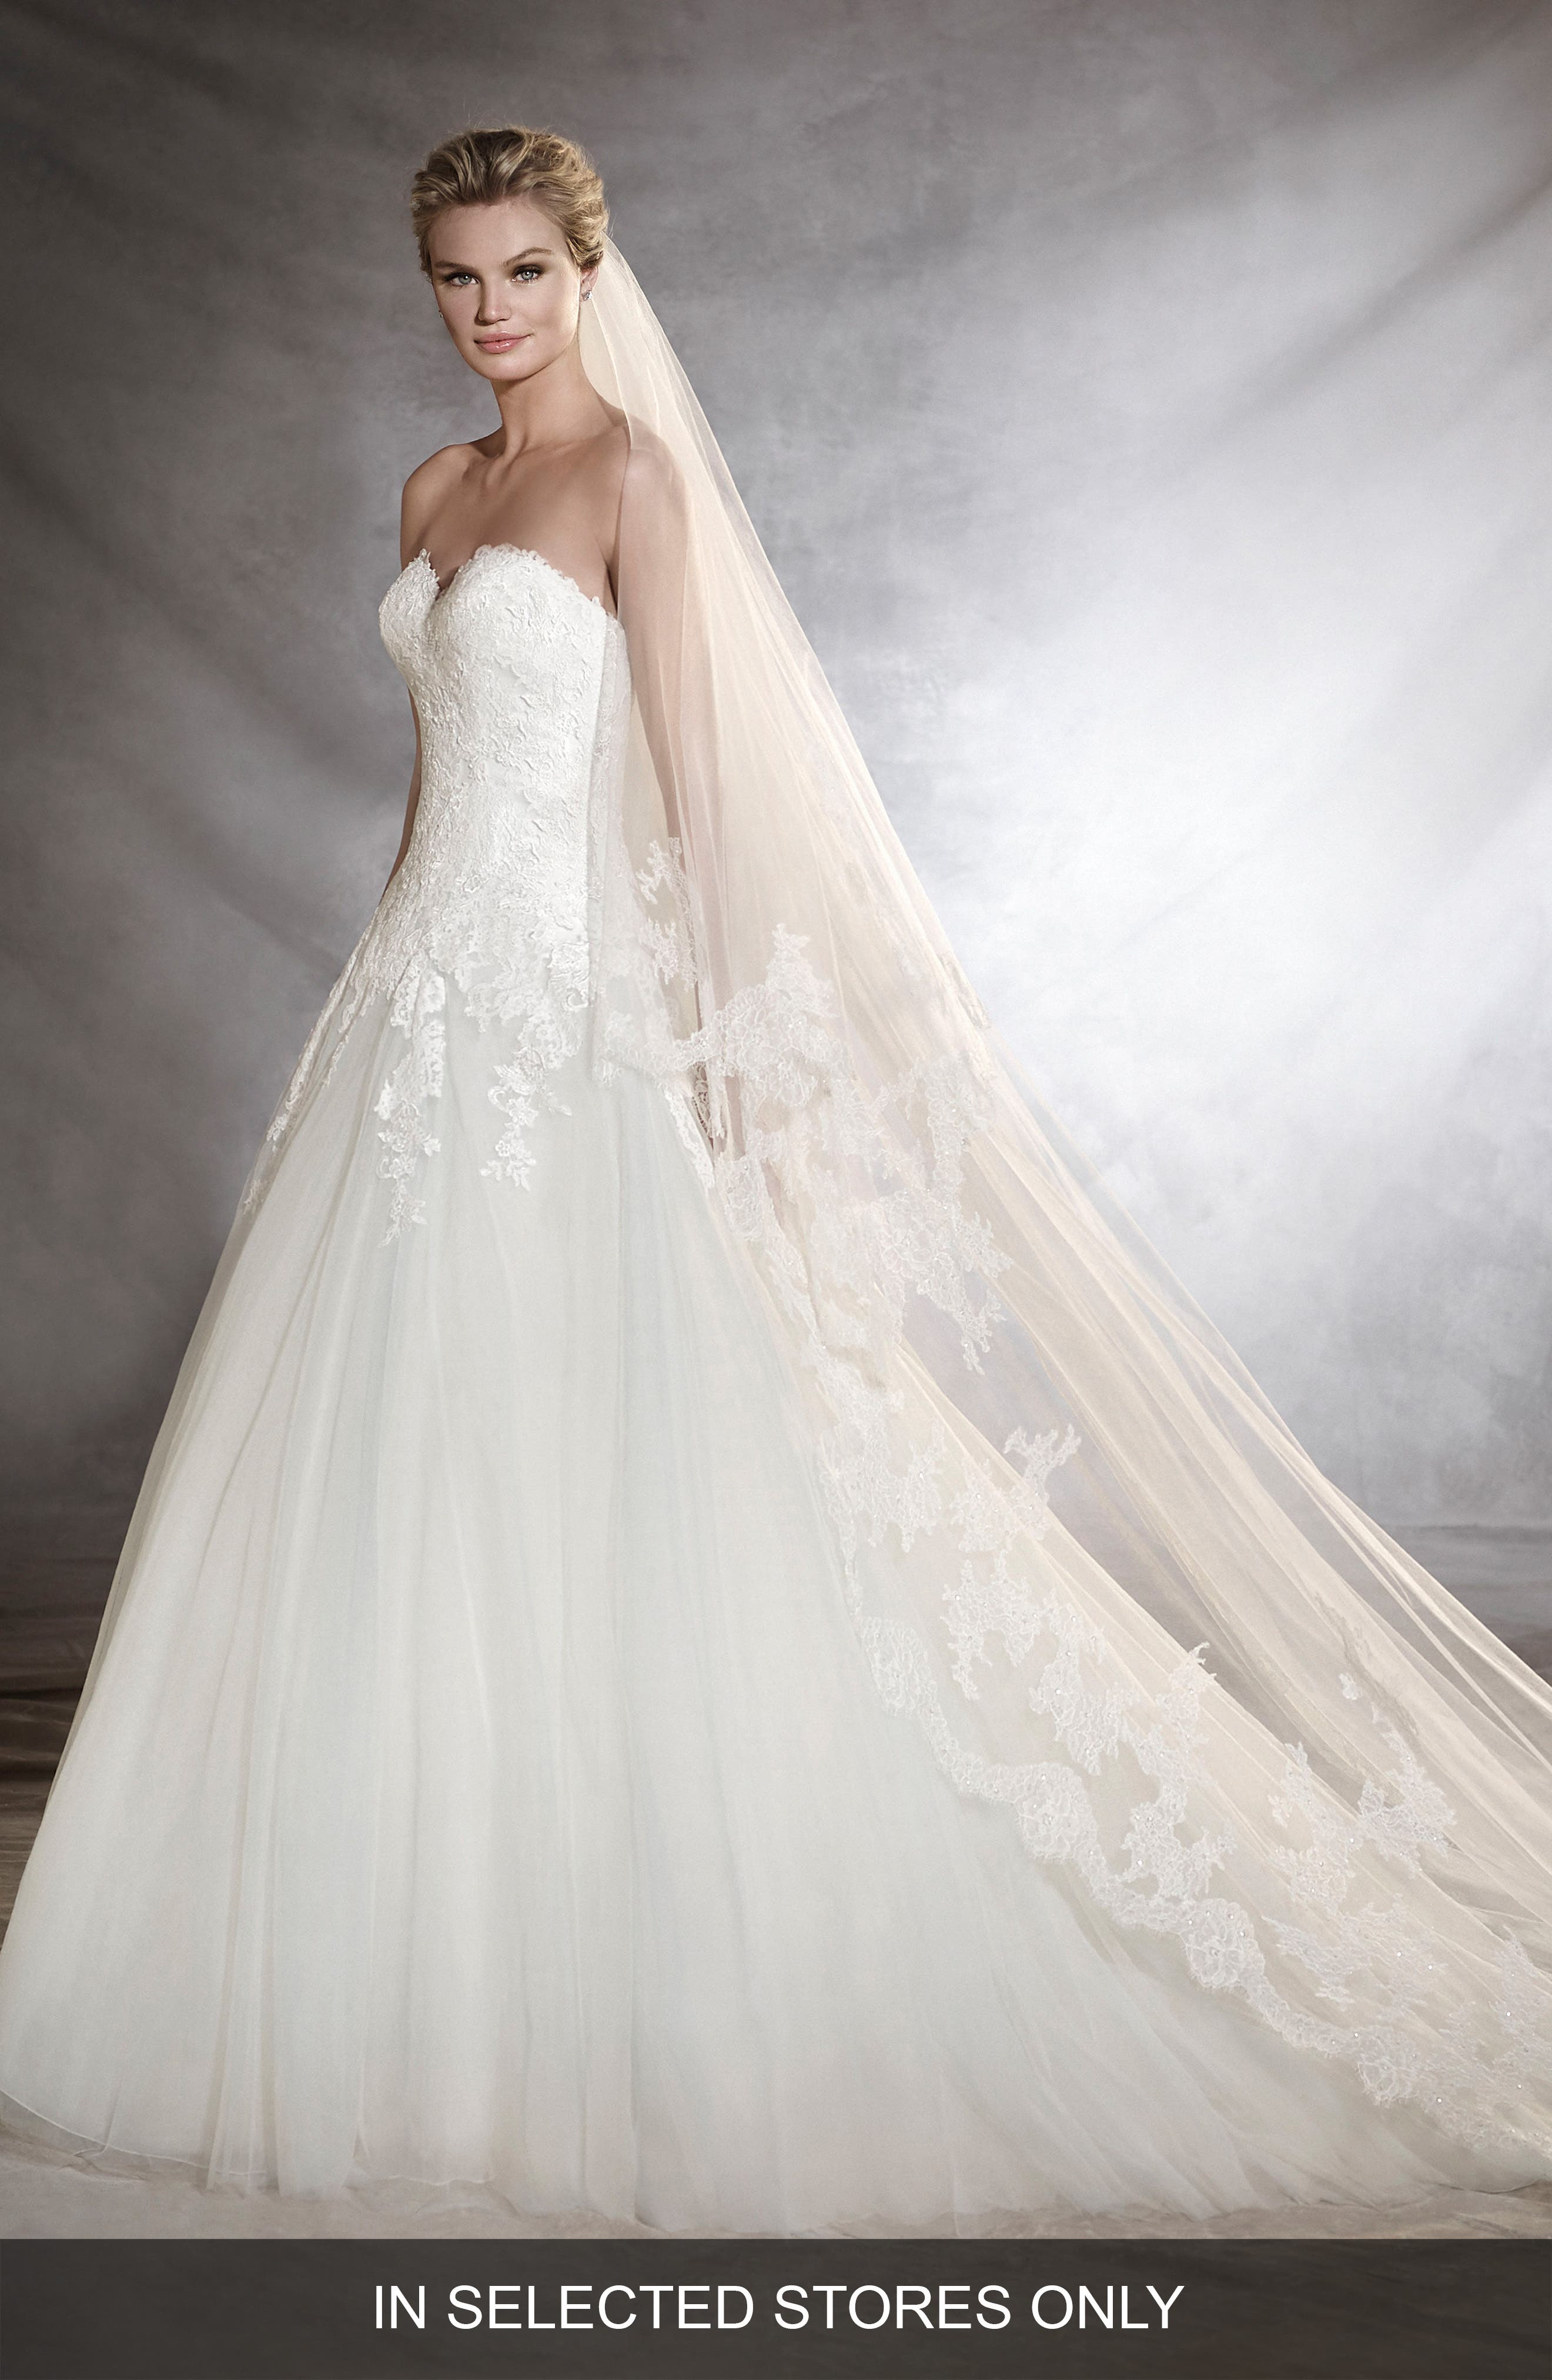 Alternate Image 1 Selected - Pronovias Oblea Strapless Tulle Gown